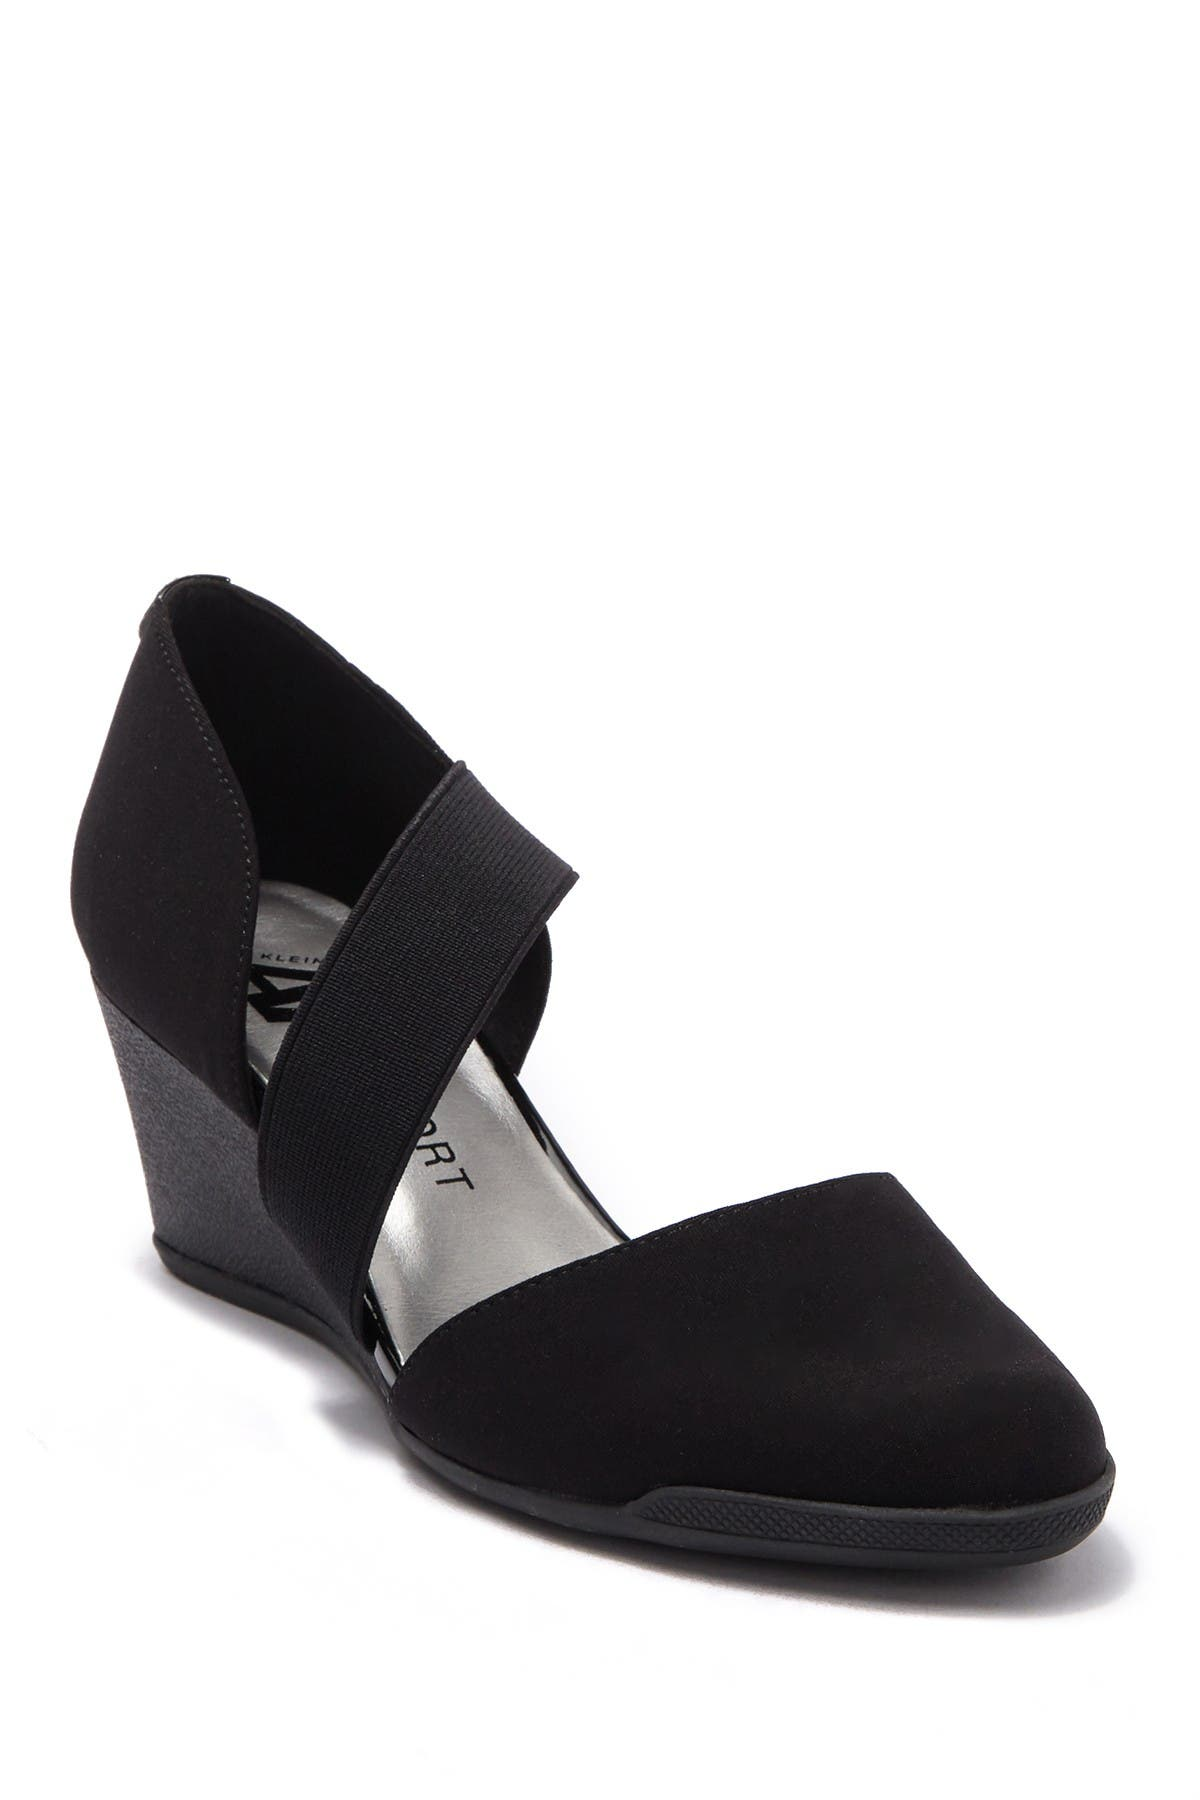 Image of Anne Klein Tangle Wedge Pump